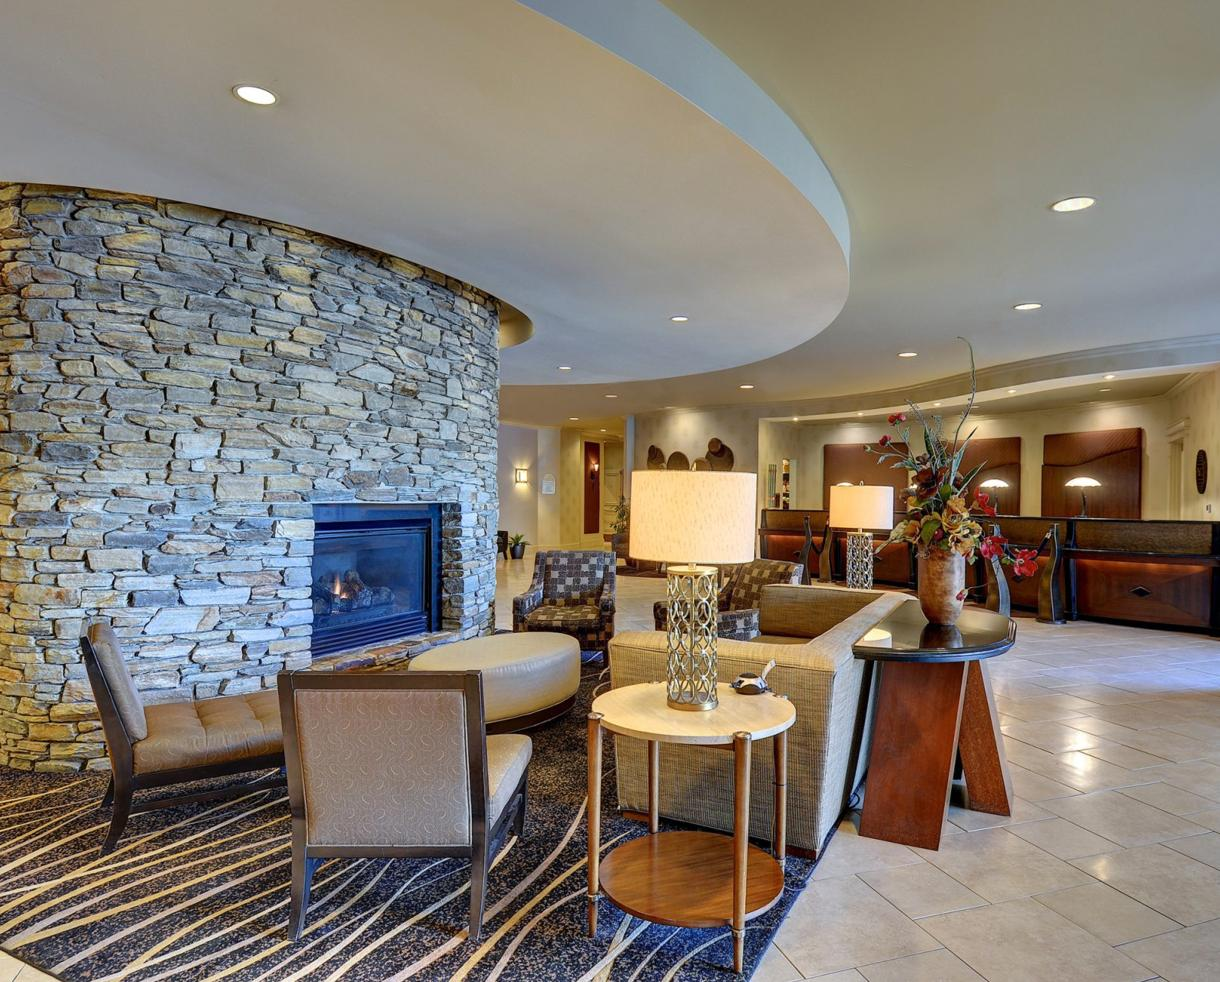 $131 for Overnight Stay at Eden Resort in Lancaster + $25 Food Credit + KIDS EAT FREE!! (42% Off)